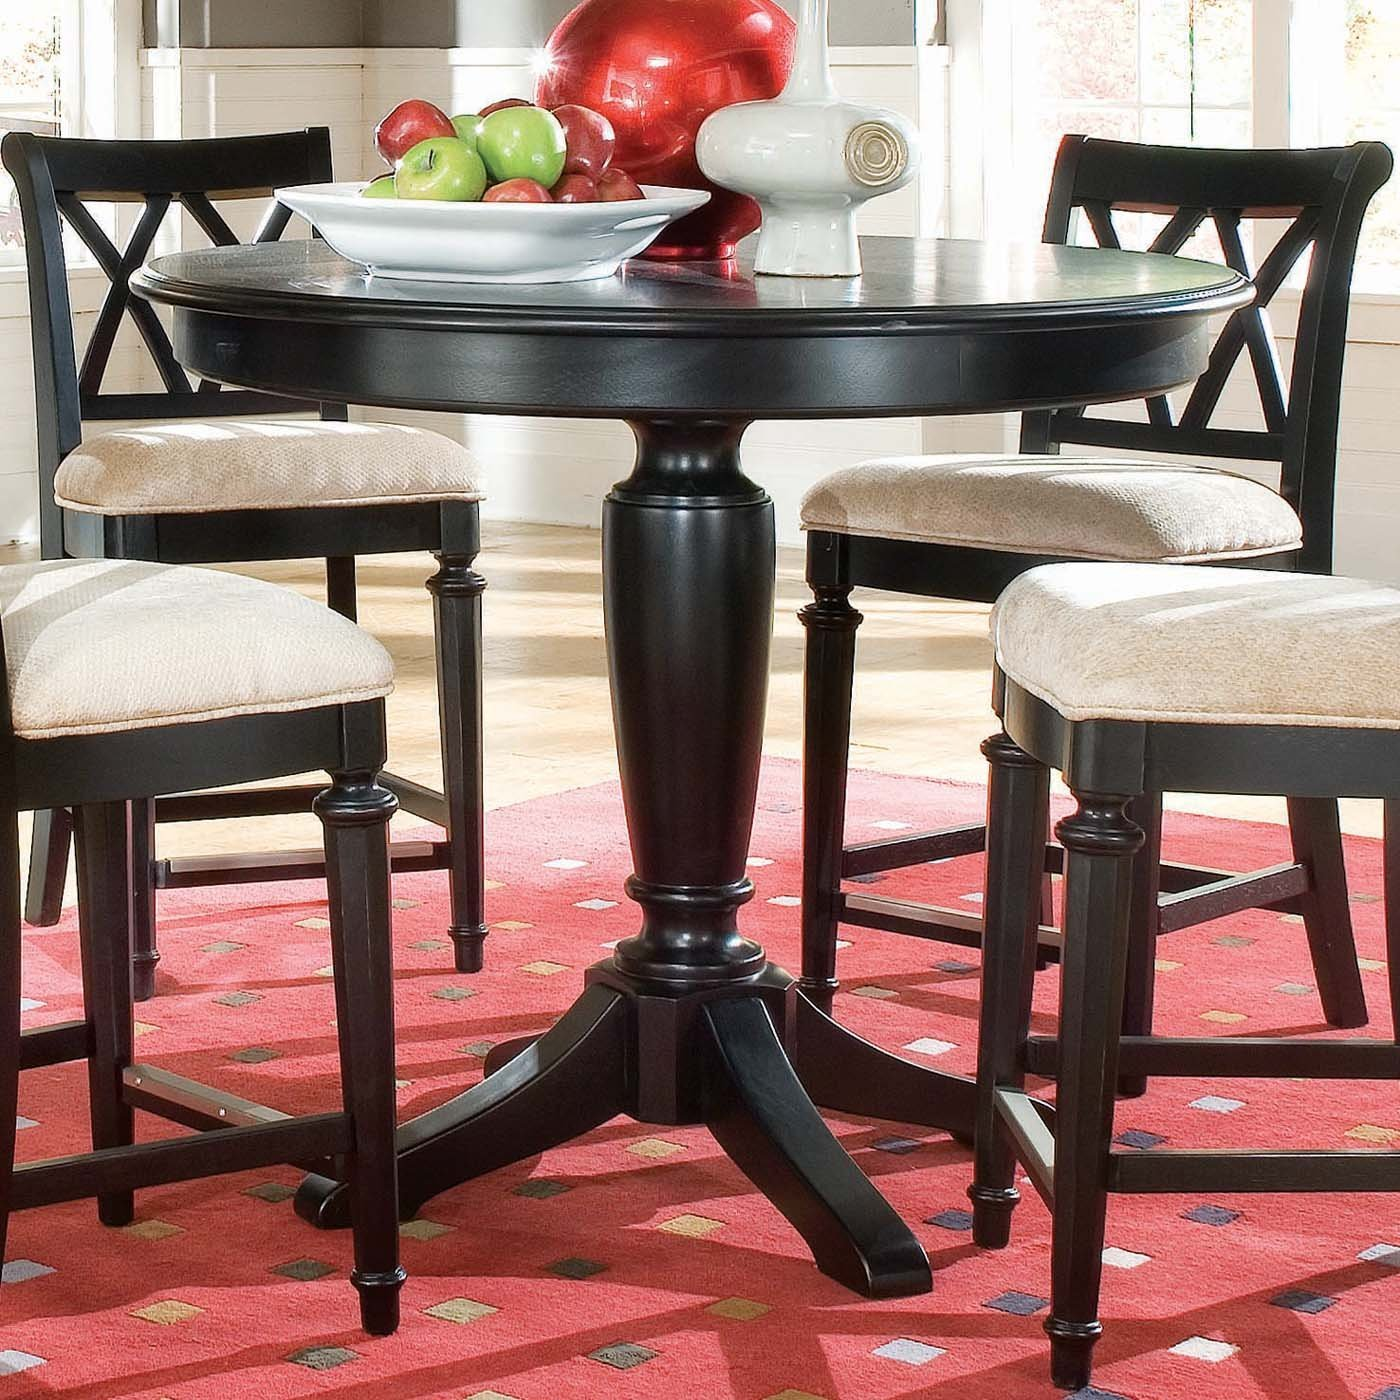 Counter Height Table Canada : Round Counter Height Table Canada Round Counter Height Ped Table